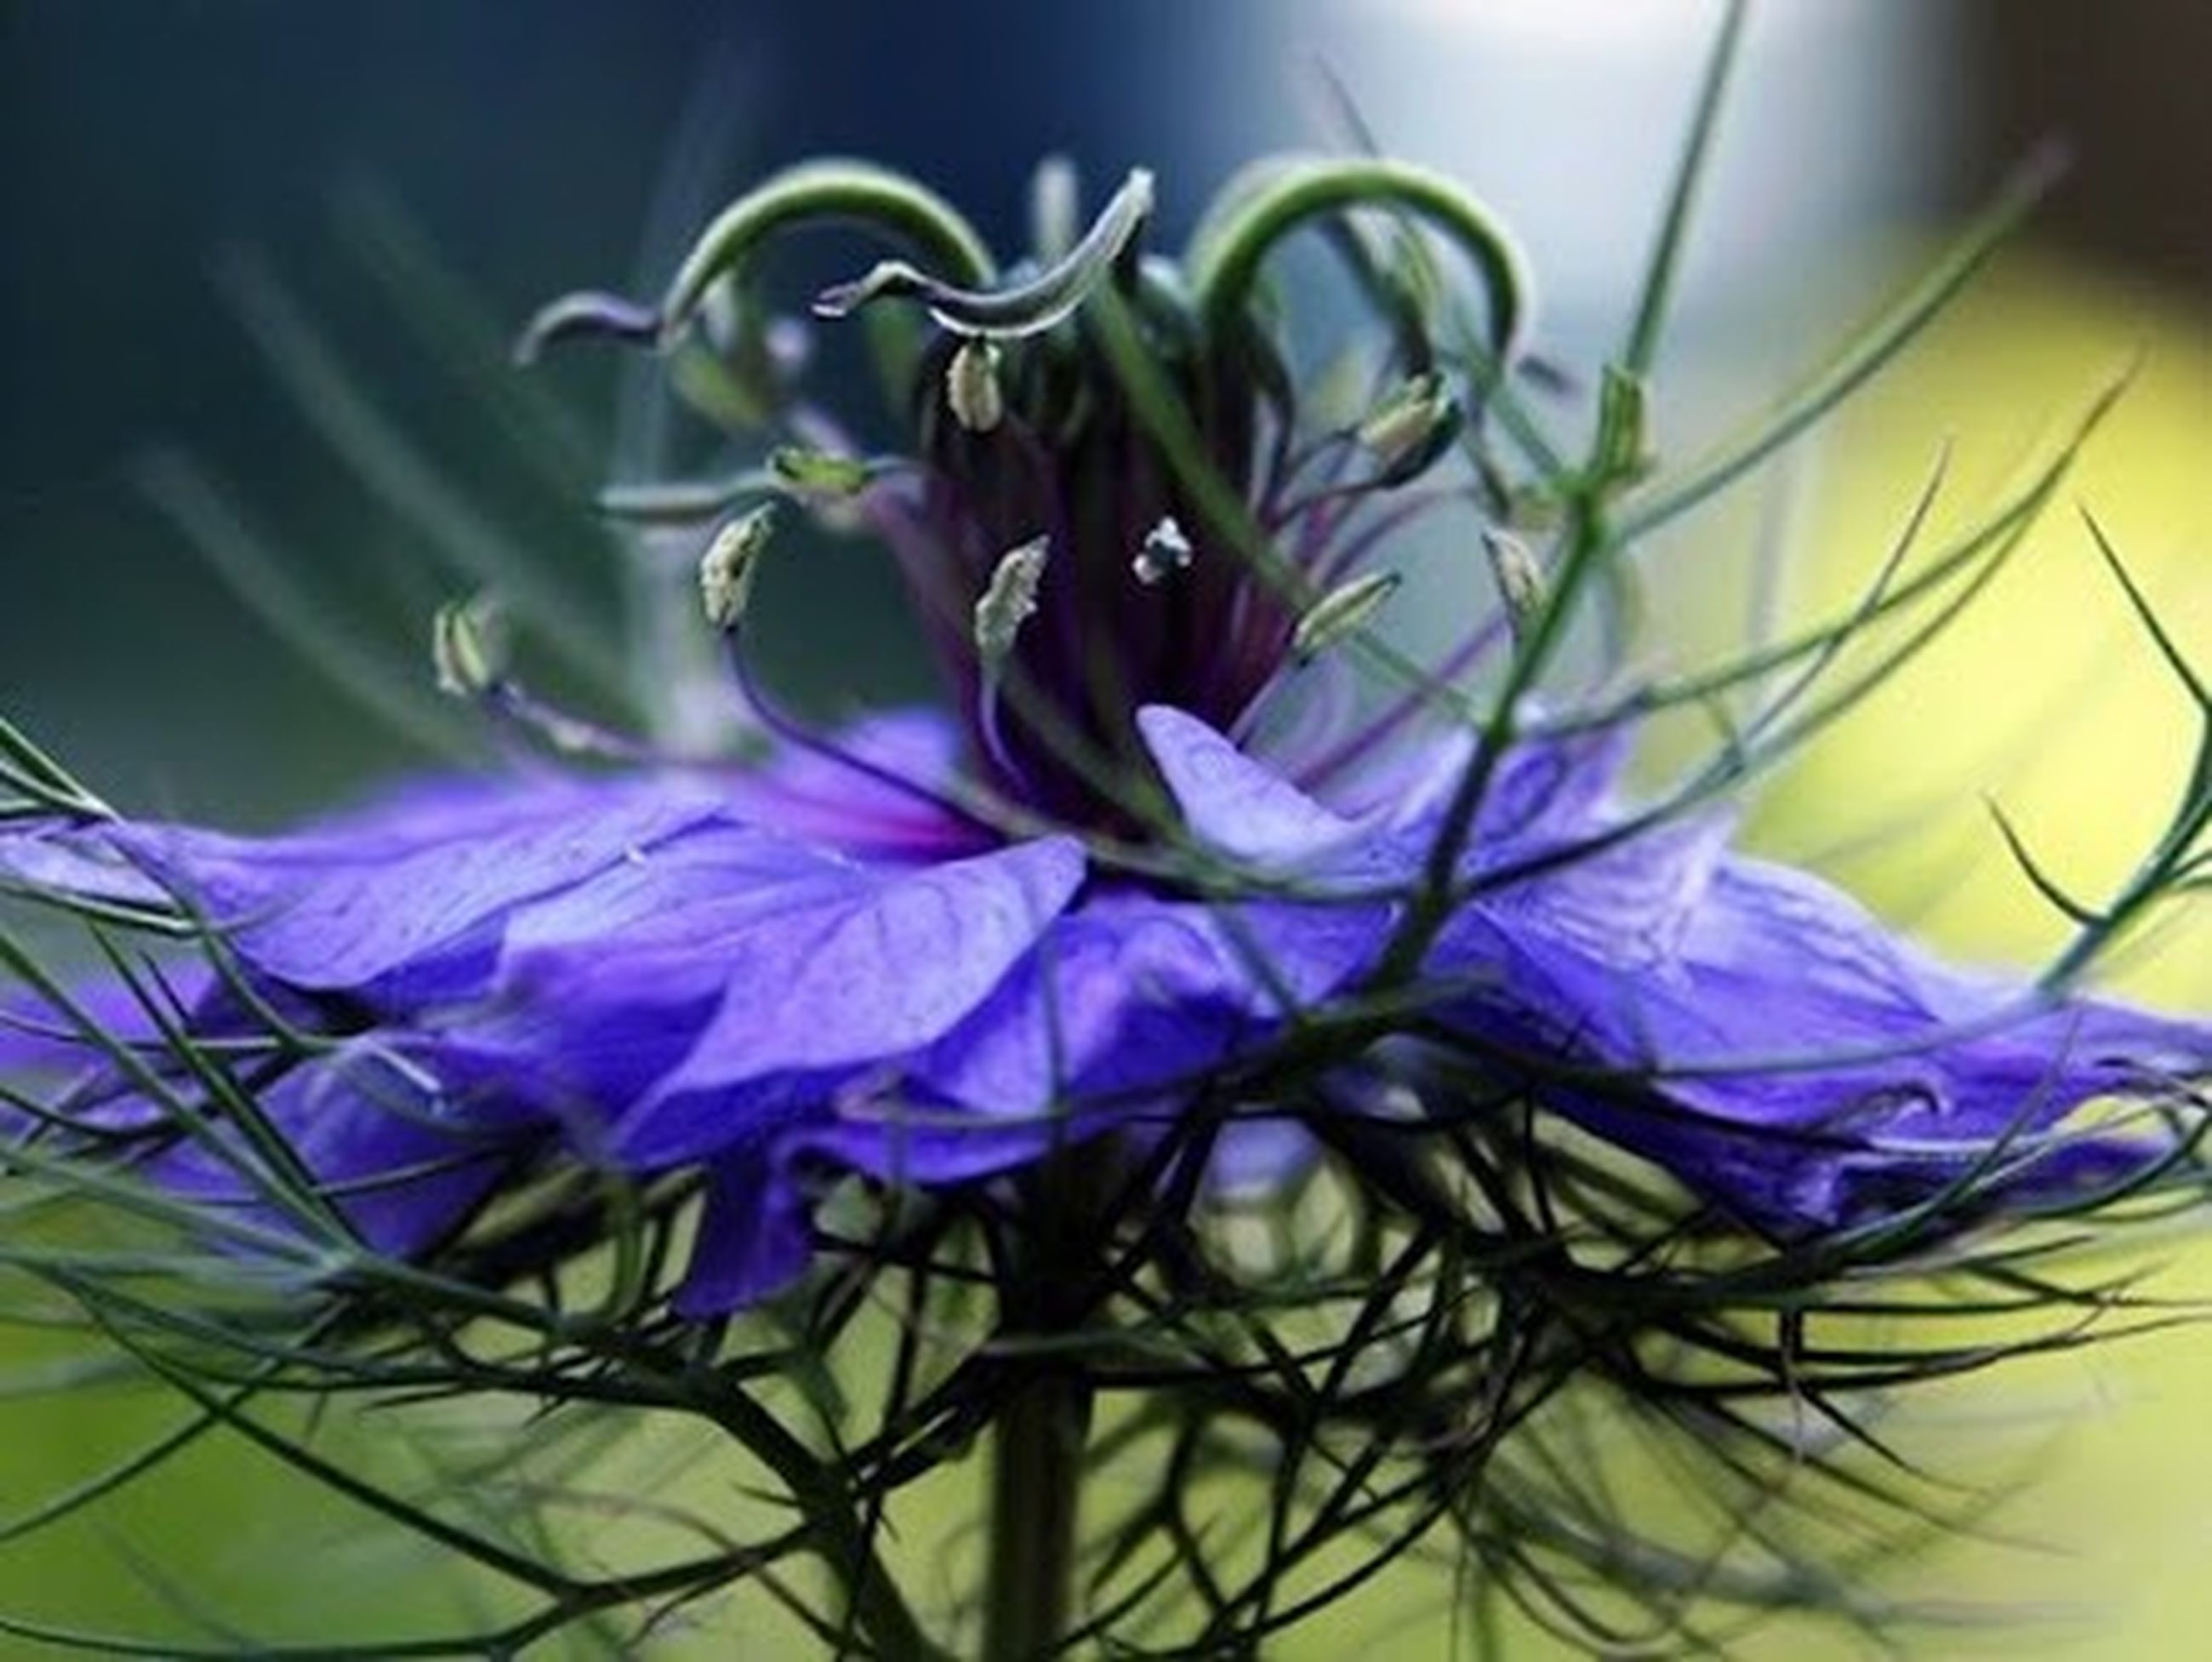 flower, indoors, purple, fragility, close-up, plant, petal, growth, freshness, flower head, blue, stem, nature, no people, beauty in nature, focus on foreground, leaf, home interior, blooming, wall - building feature